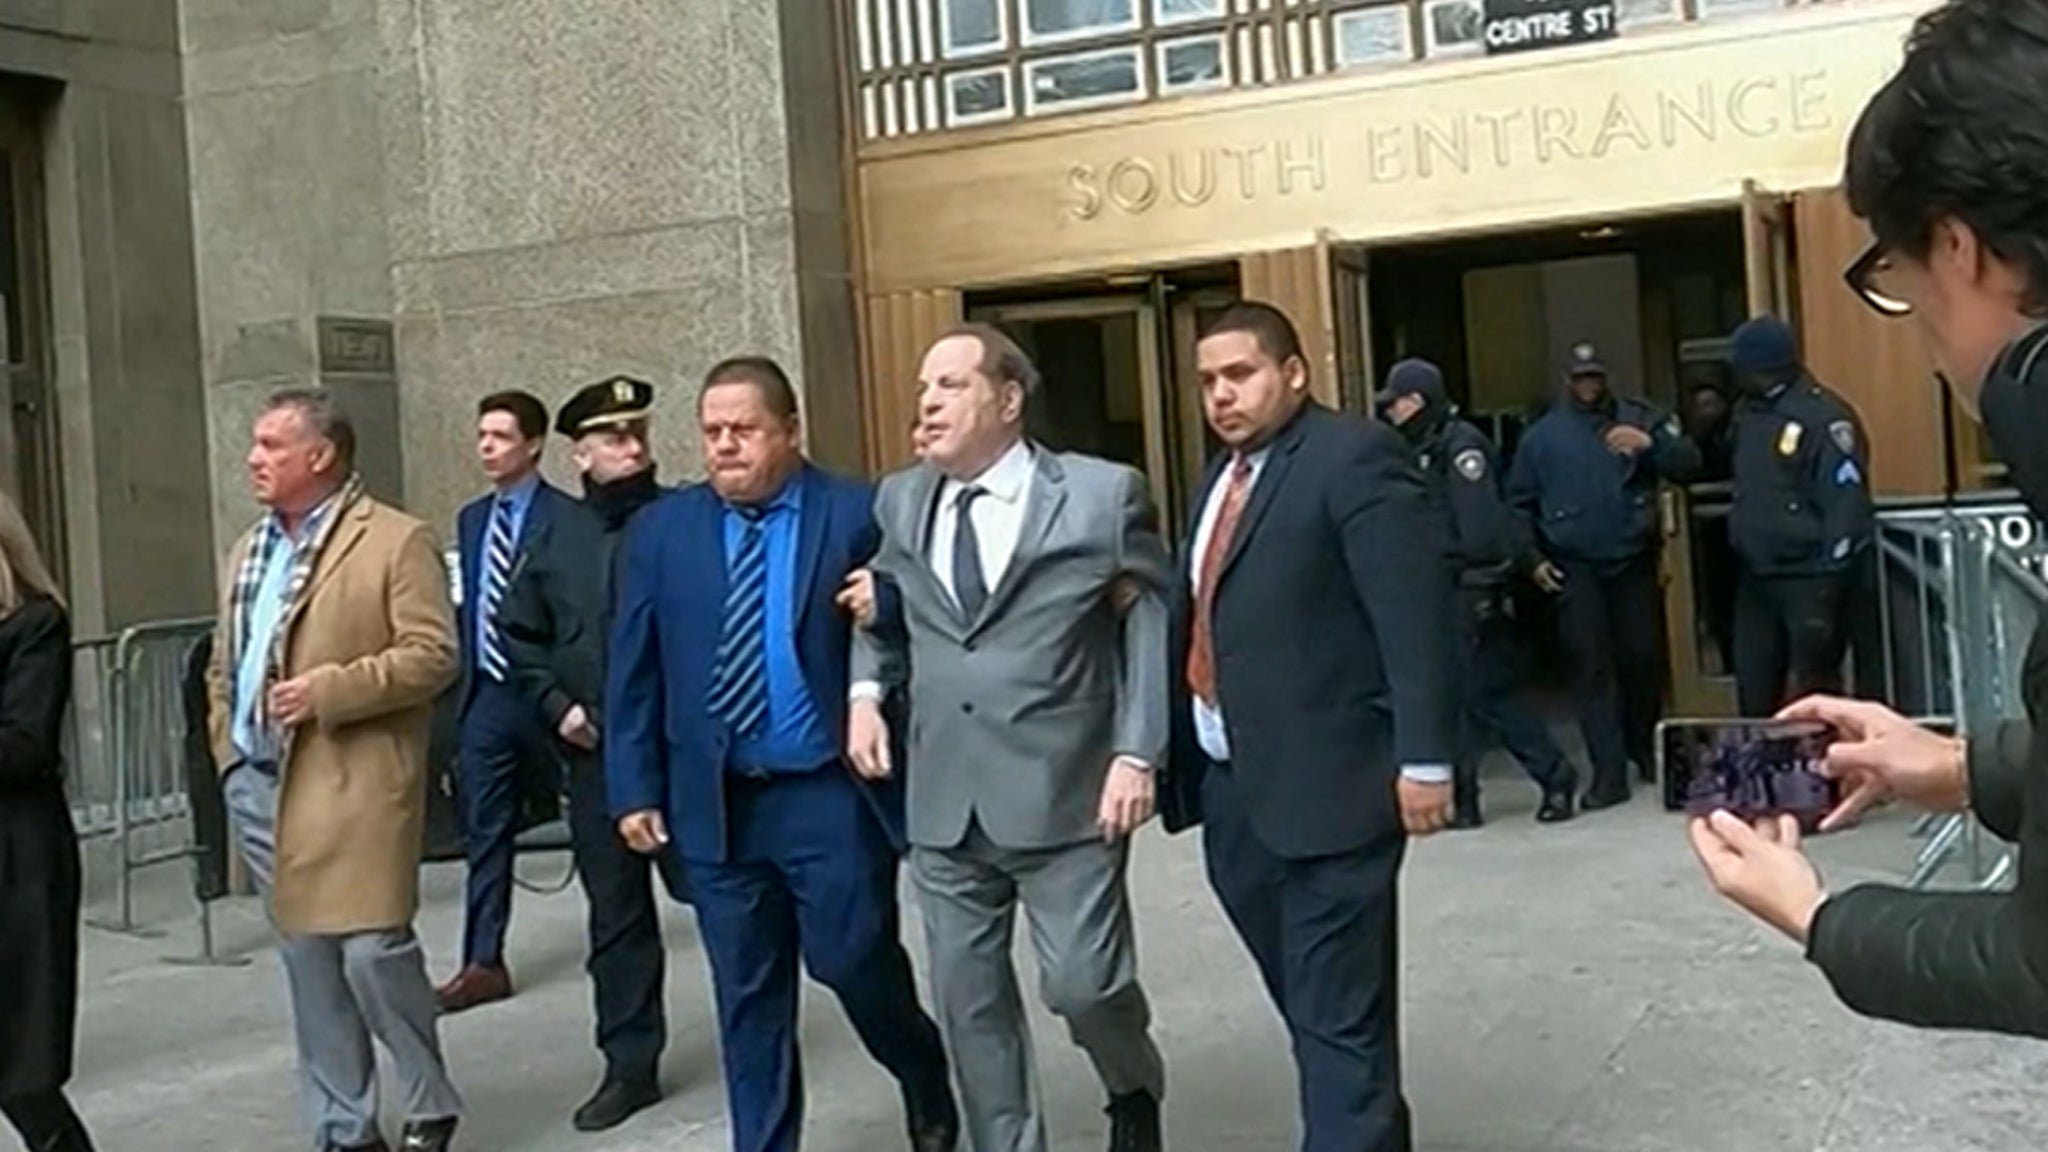 Harvey Weinstein Can Barely Walk Out of Court Due To Back Pain